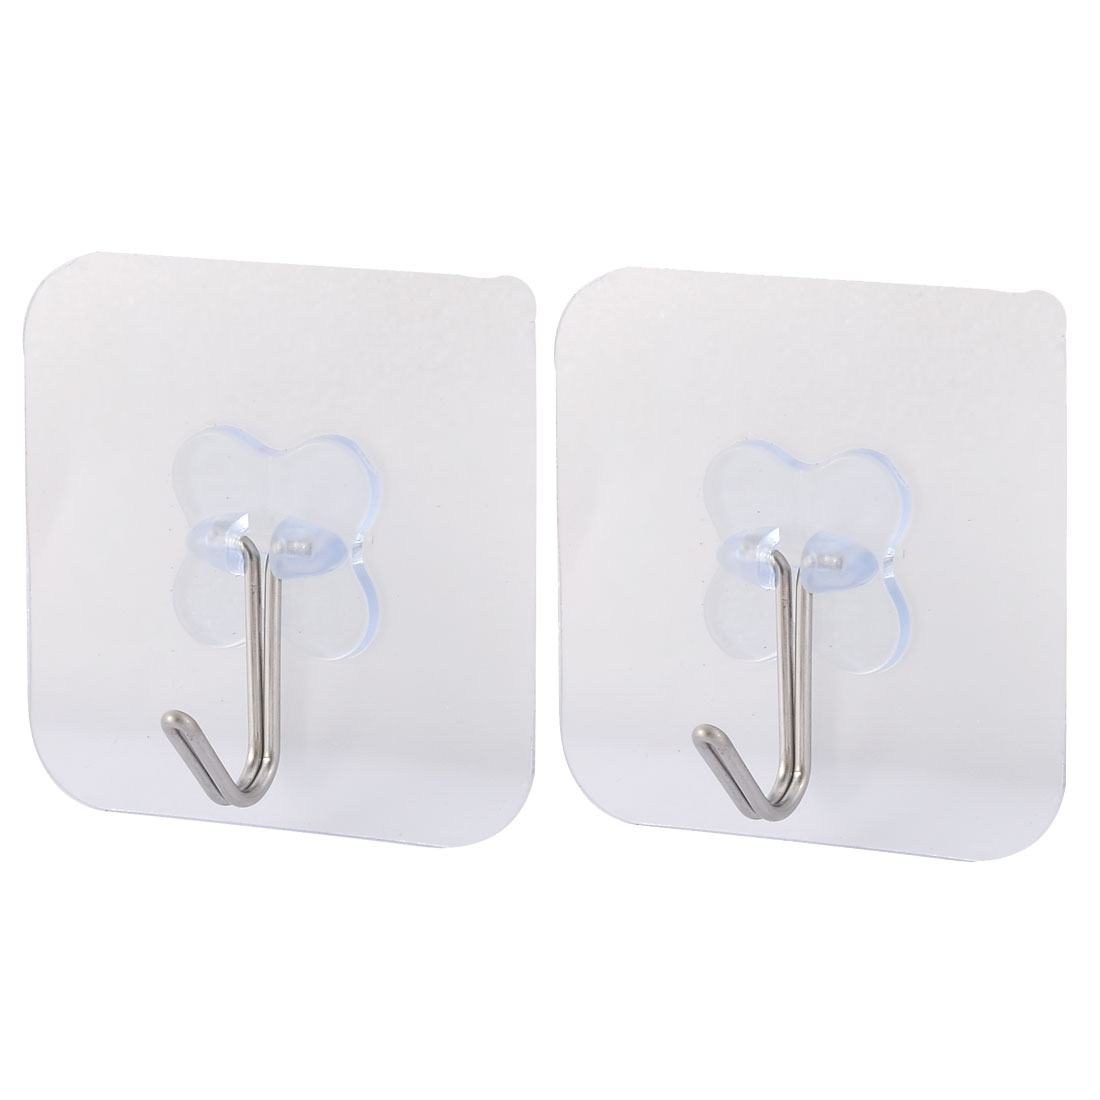 Home Wall Door No Scratch Clothes Scarf Hanger Self Adhesive Seamless Hook 2pcs